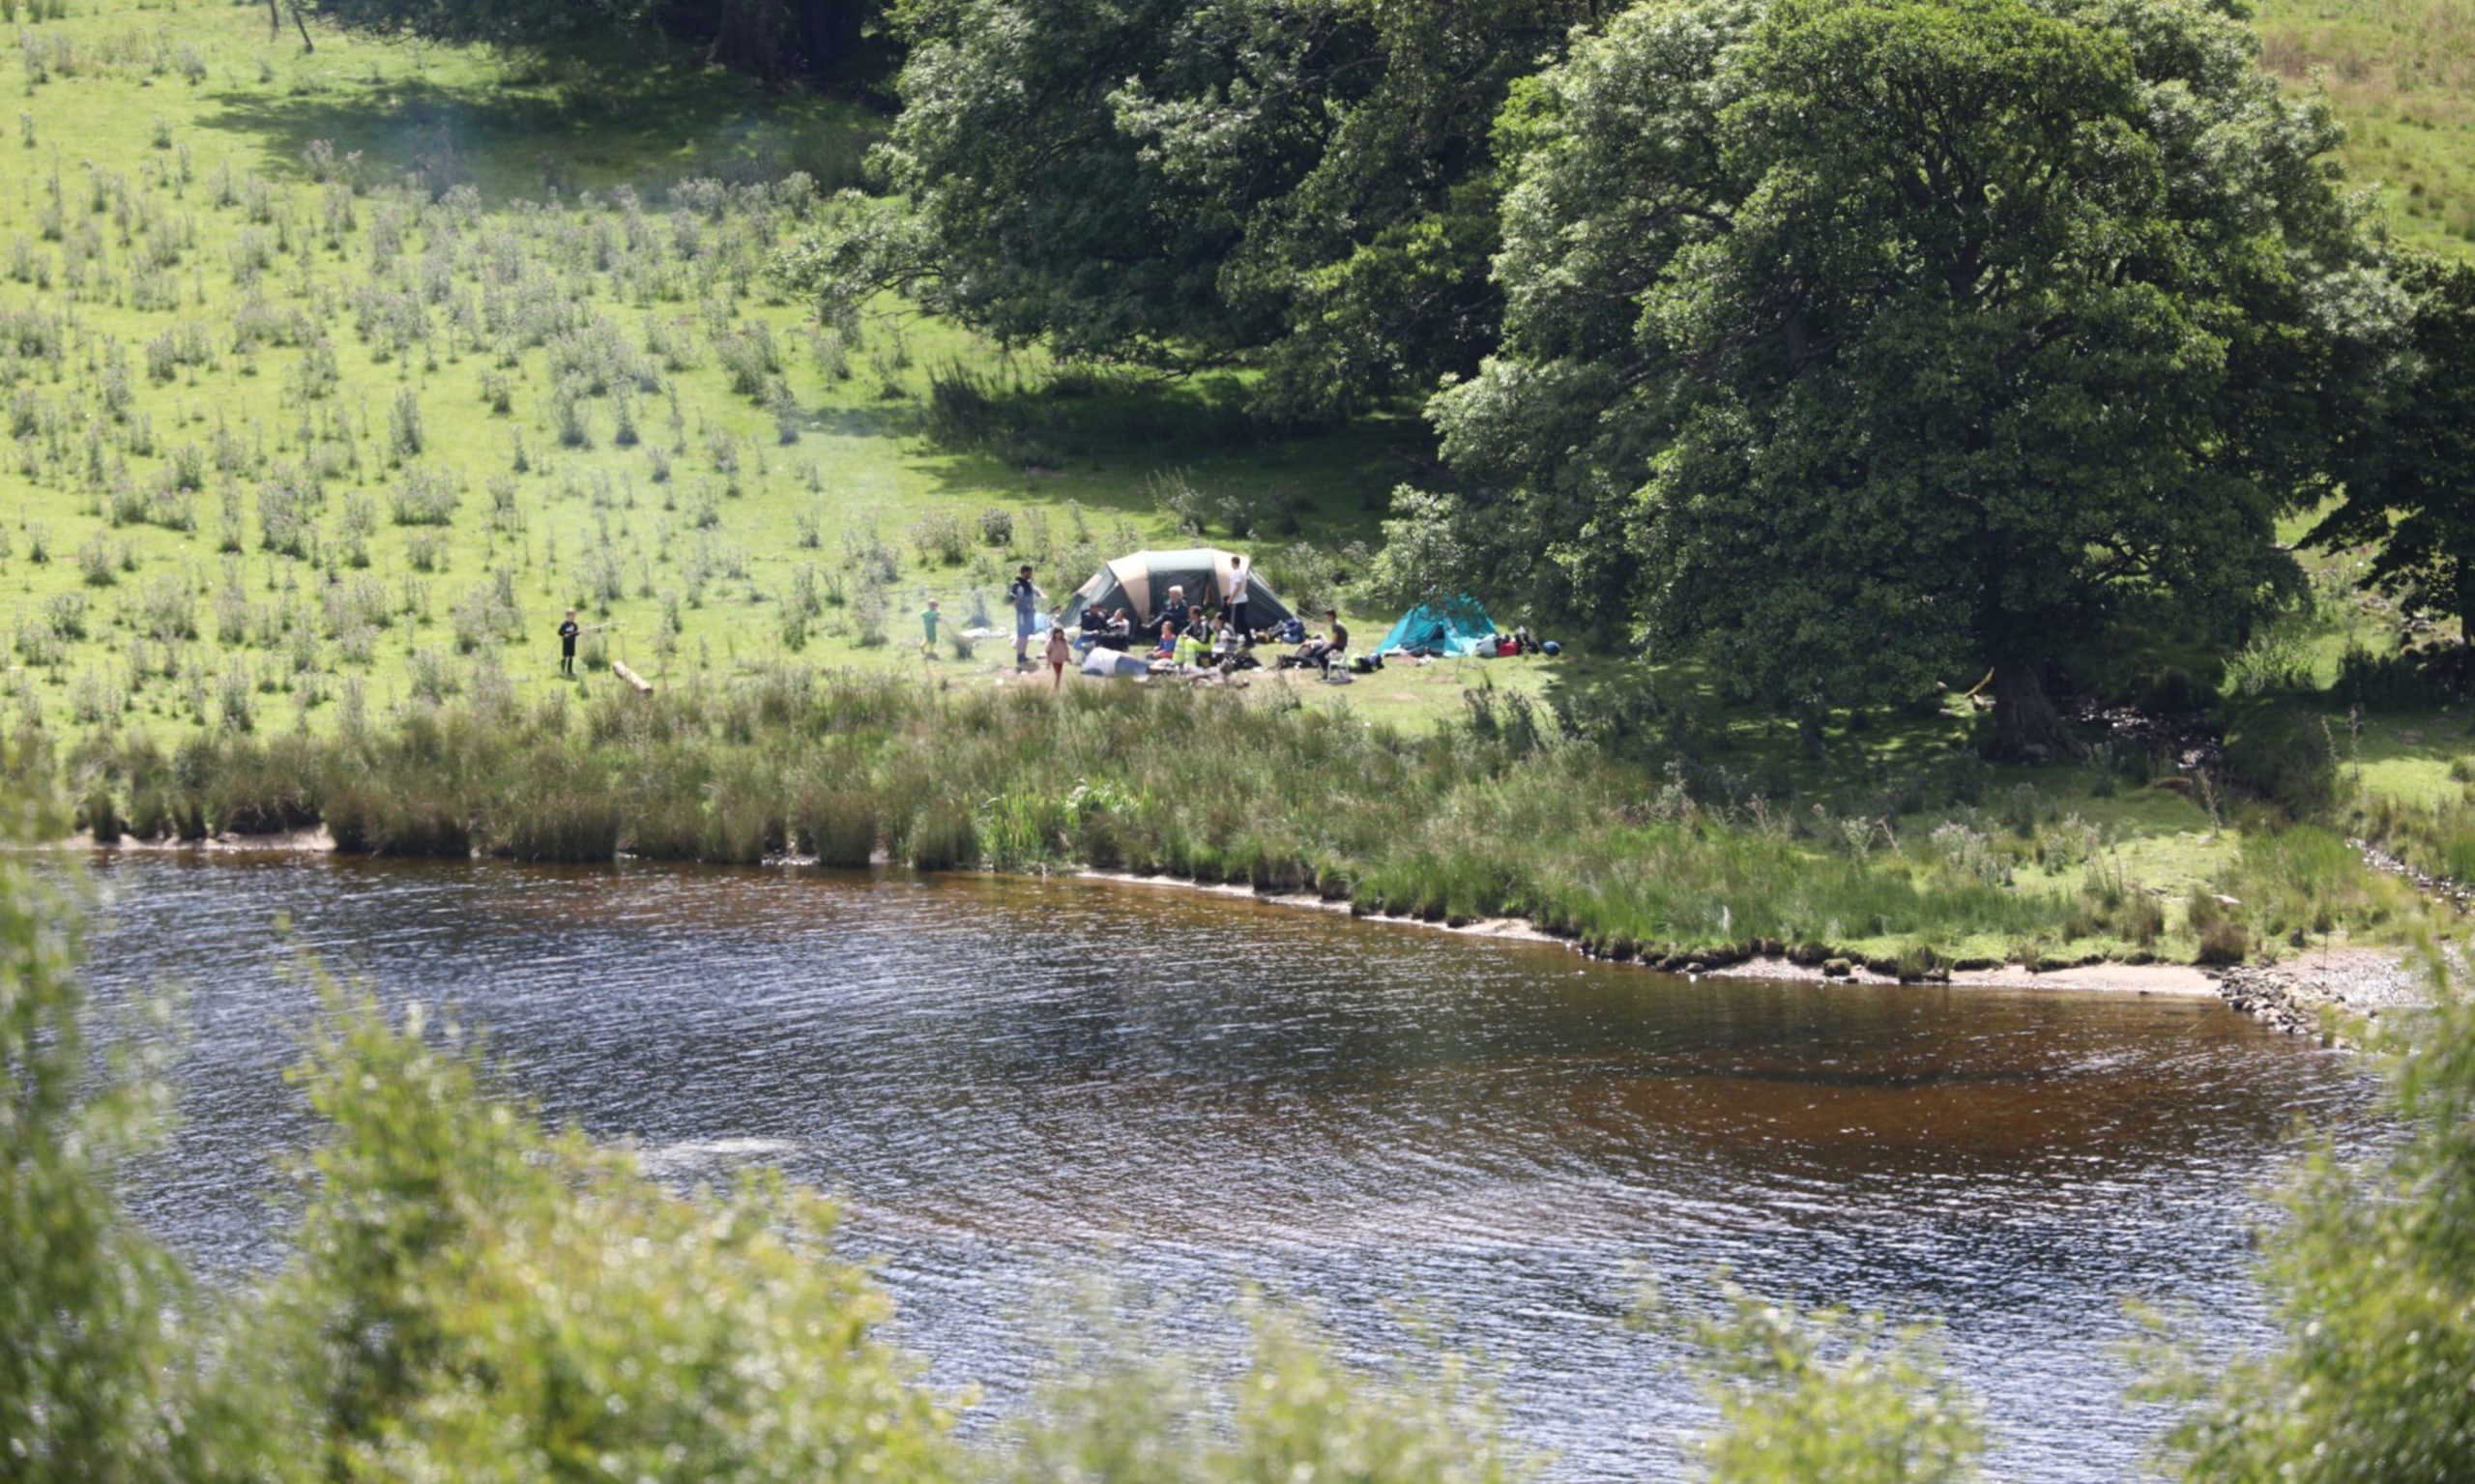 Wild campers at Loch Tummel on Sunday.